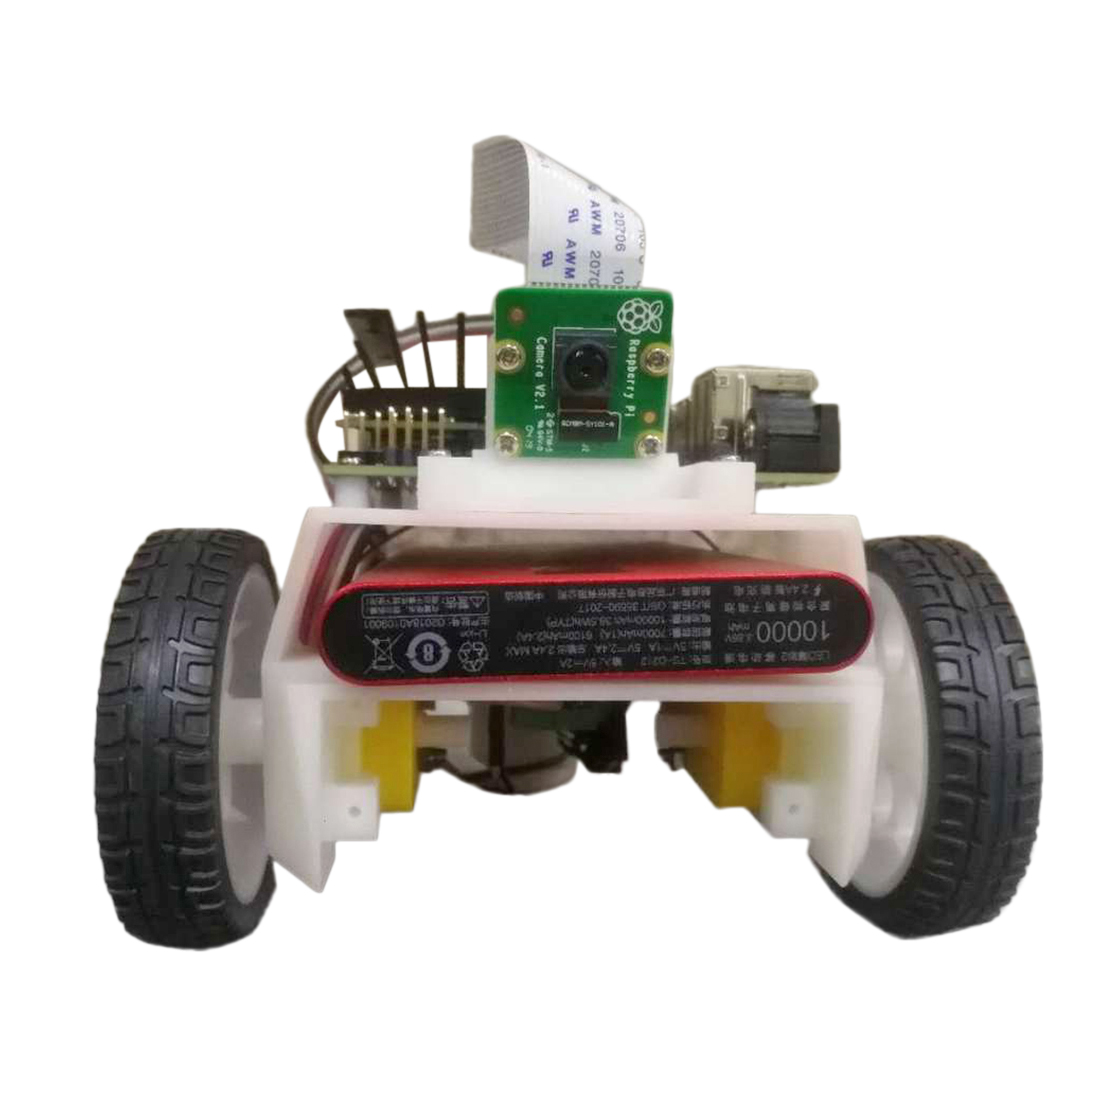 Programmable Automatic Drive Robot Car Kit Educational Learning Kit